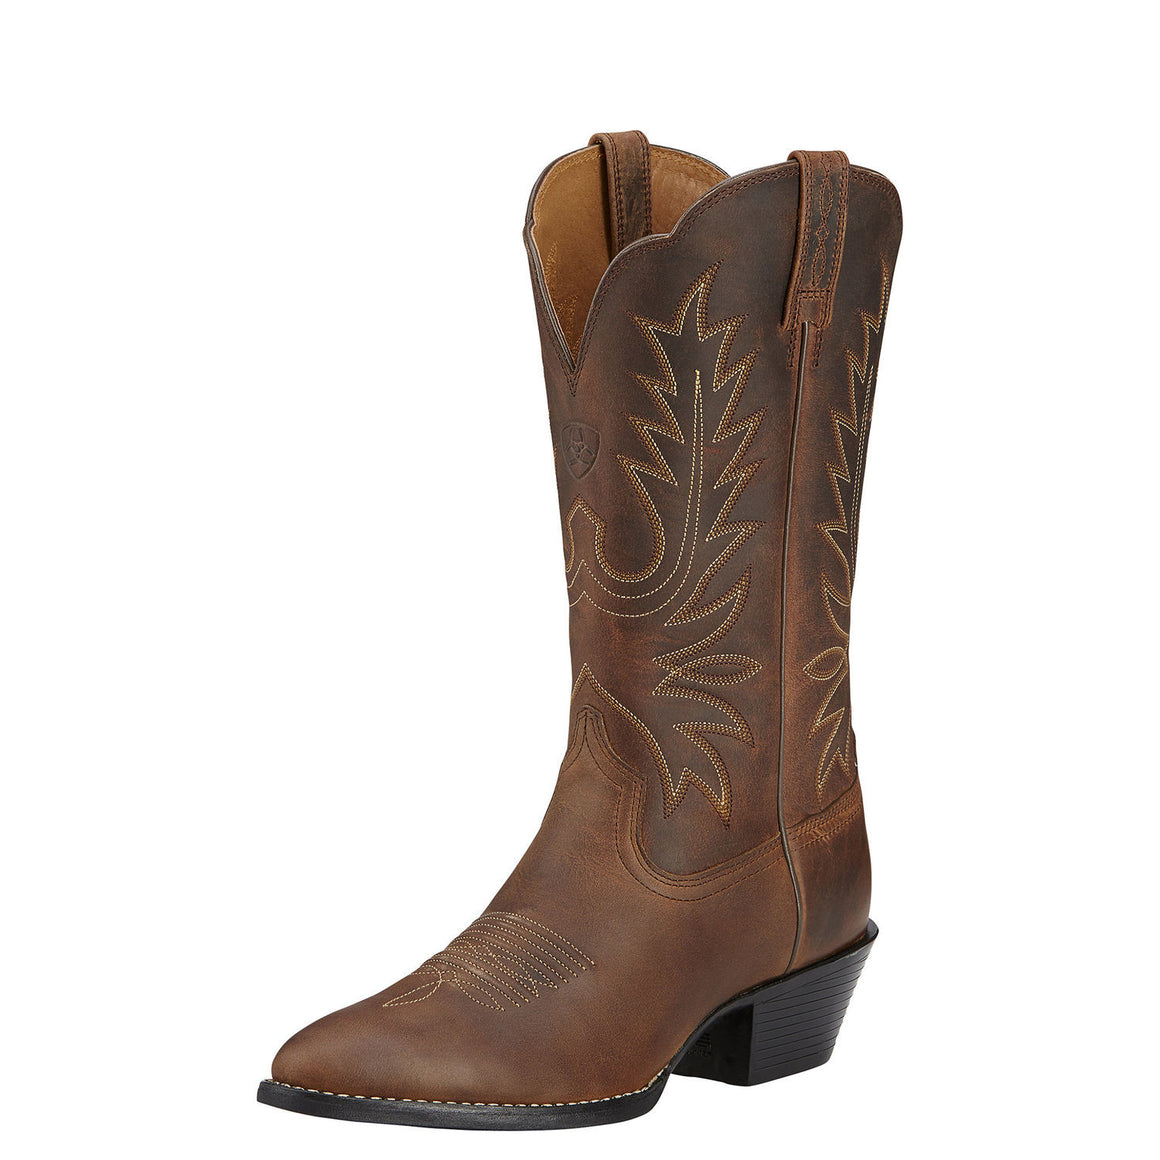 Ariat Women's Heritage Western Boot - Distressed Brown 10001021 - ShoeShackOnline